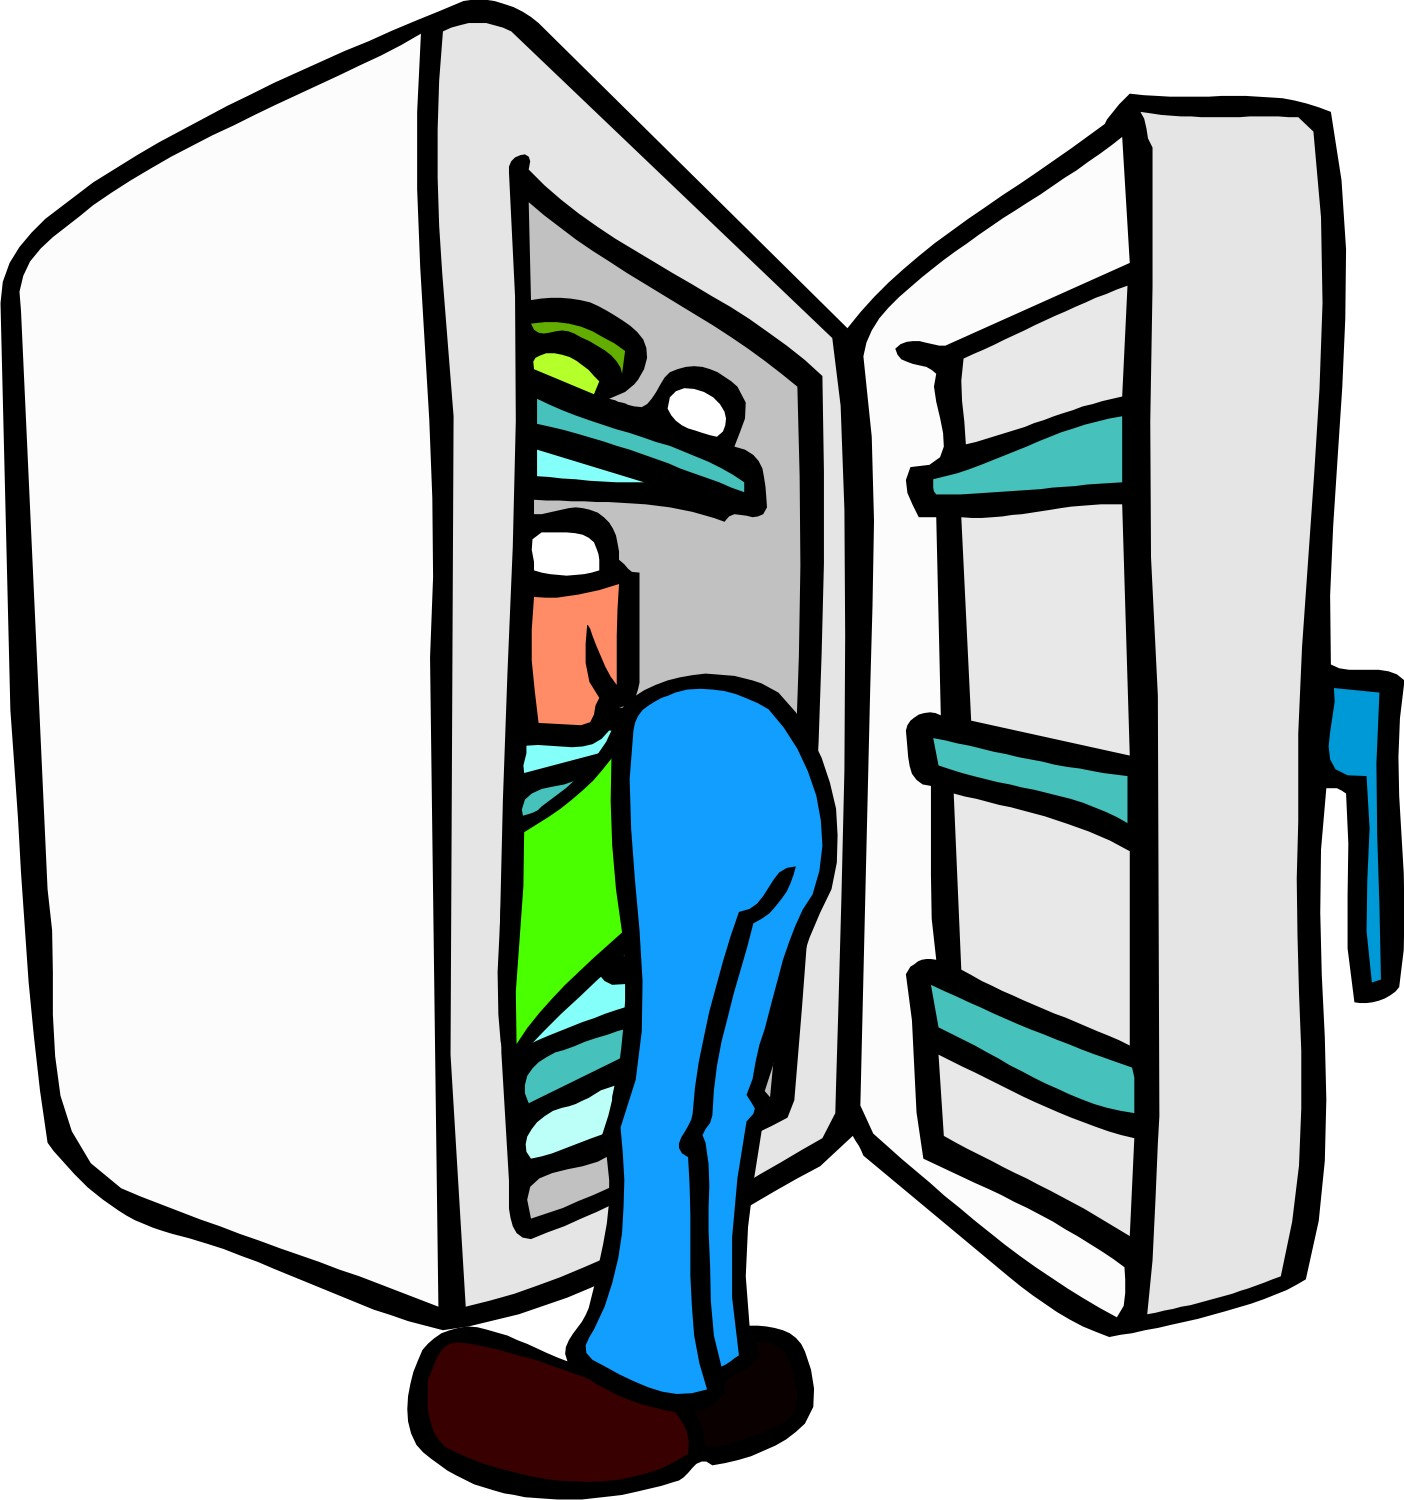 cleaning out refrigerator clipart #8